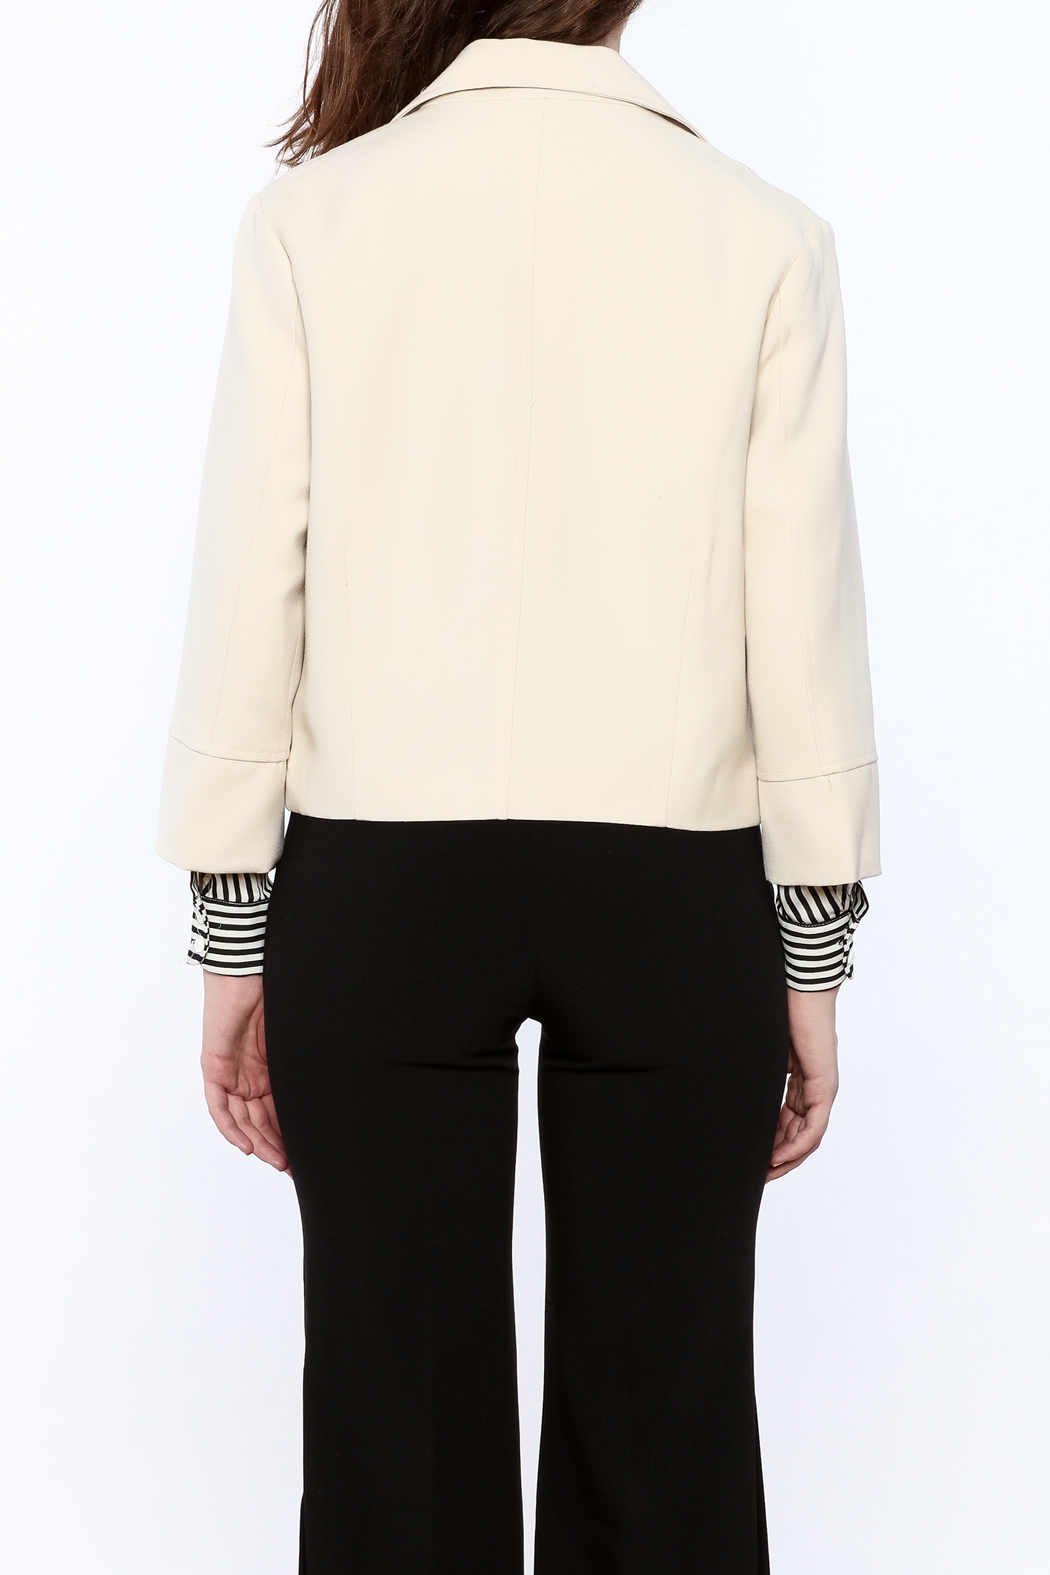 NU New York Cream Cropped Blazer - Back Cropped Image